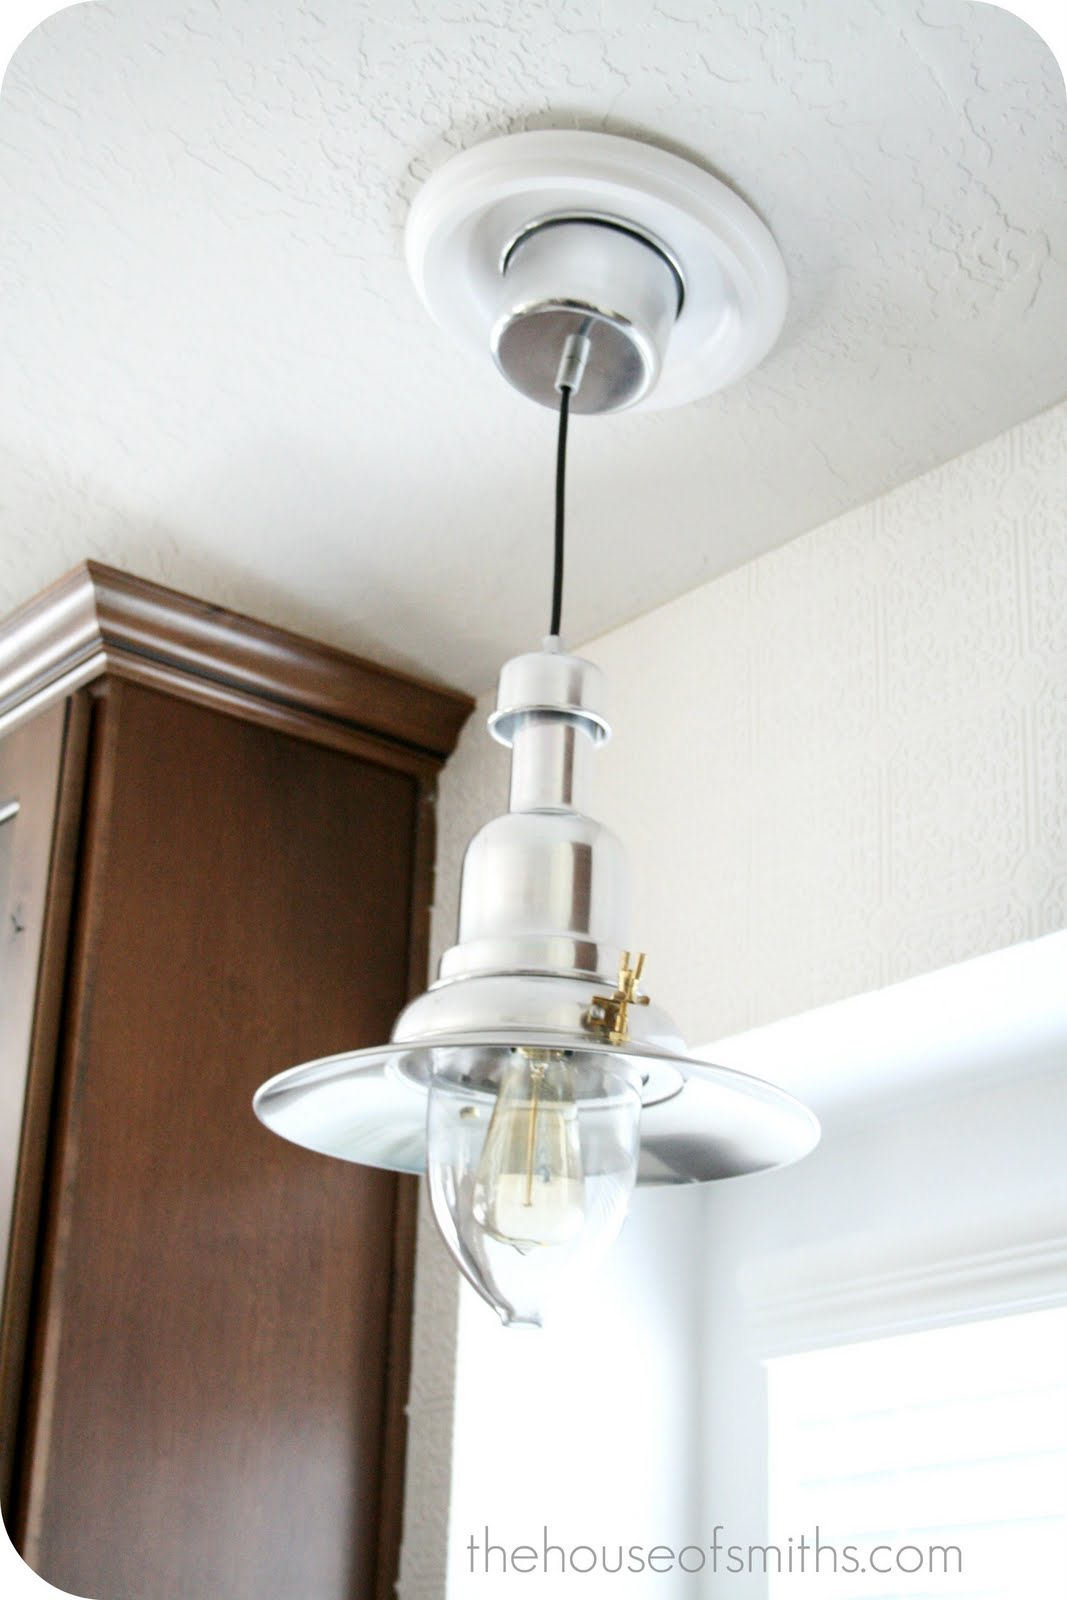 New Kitchen Lighting - Converting a can light with a ...